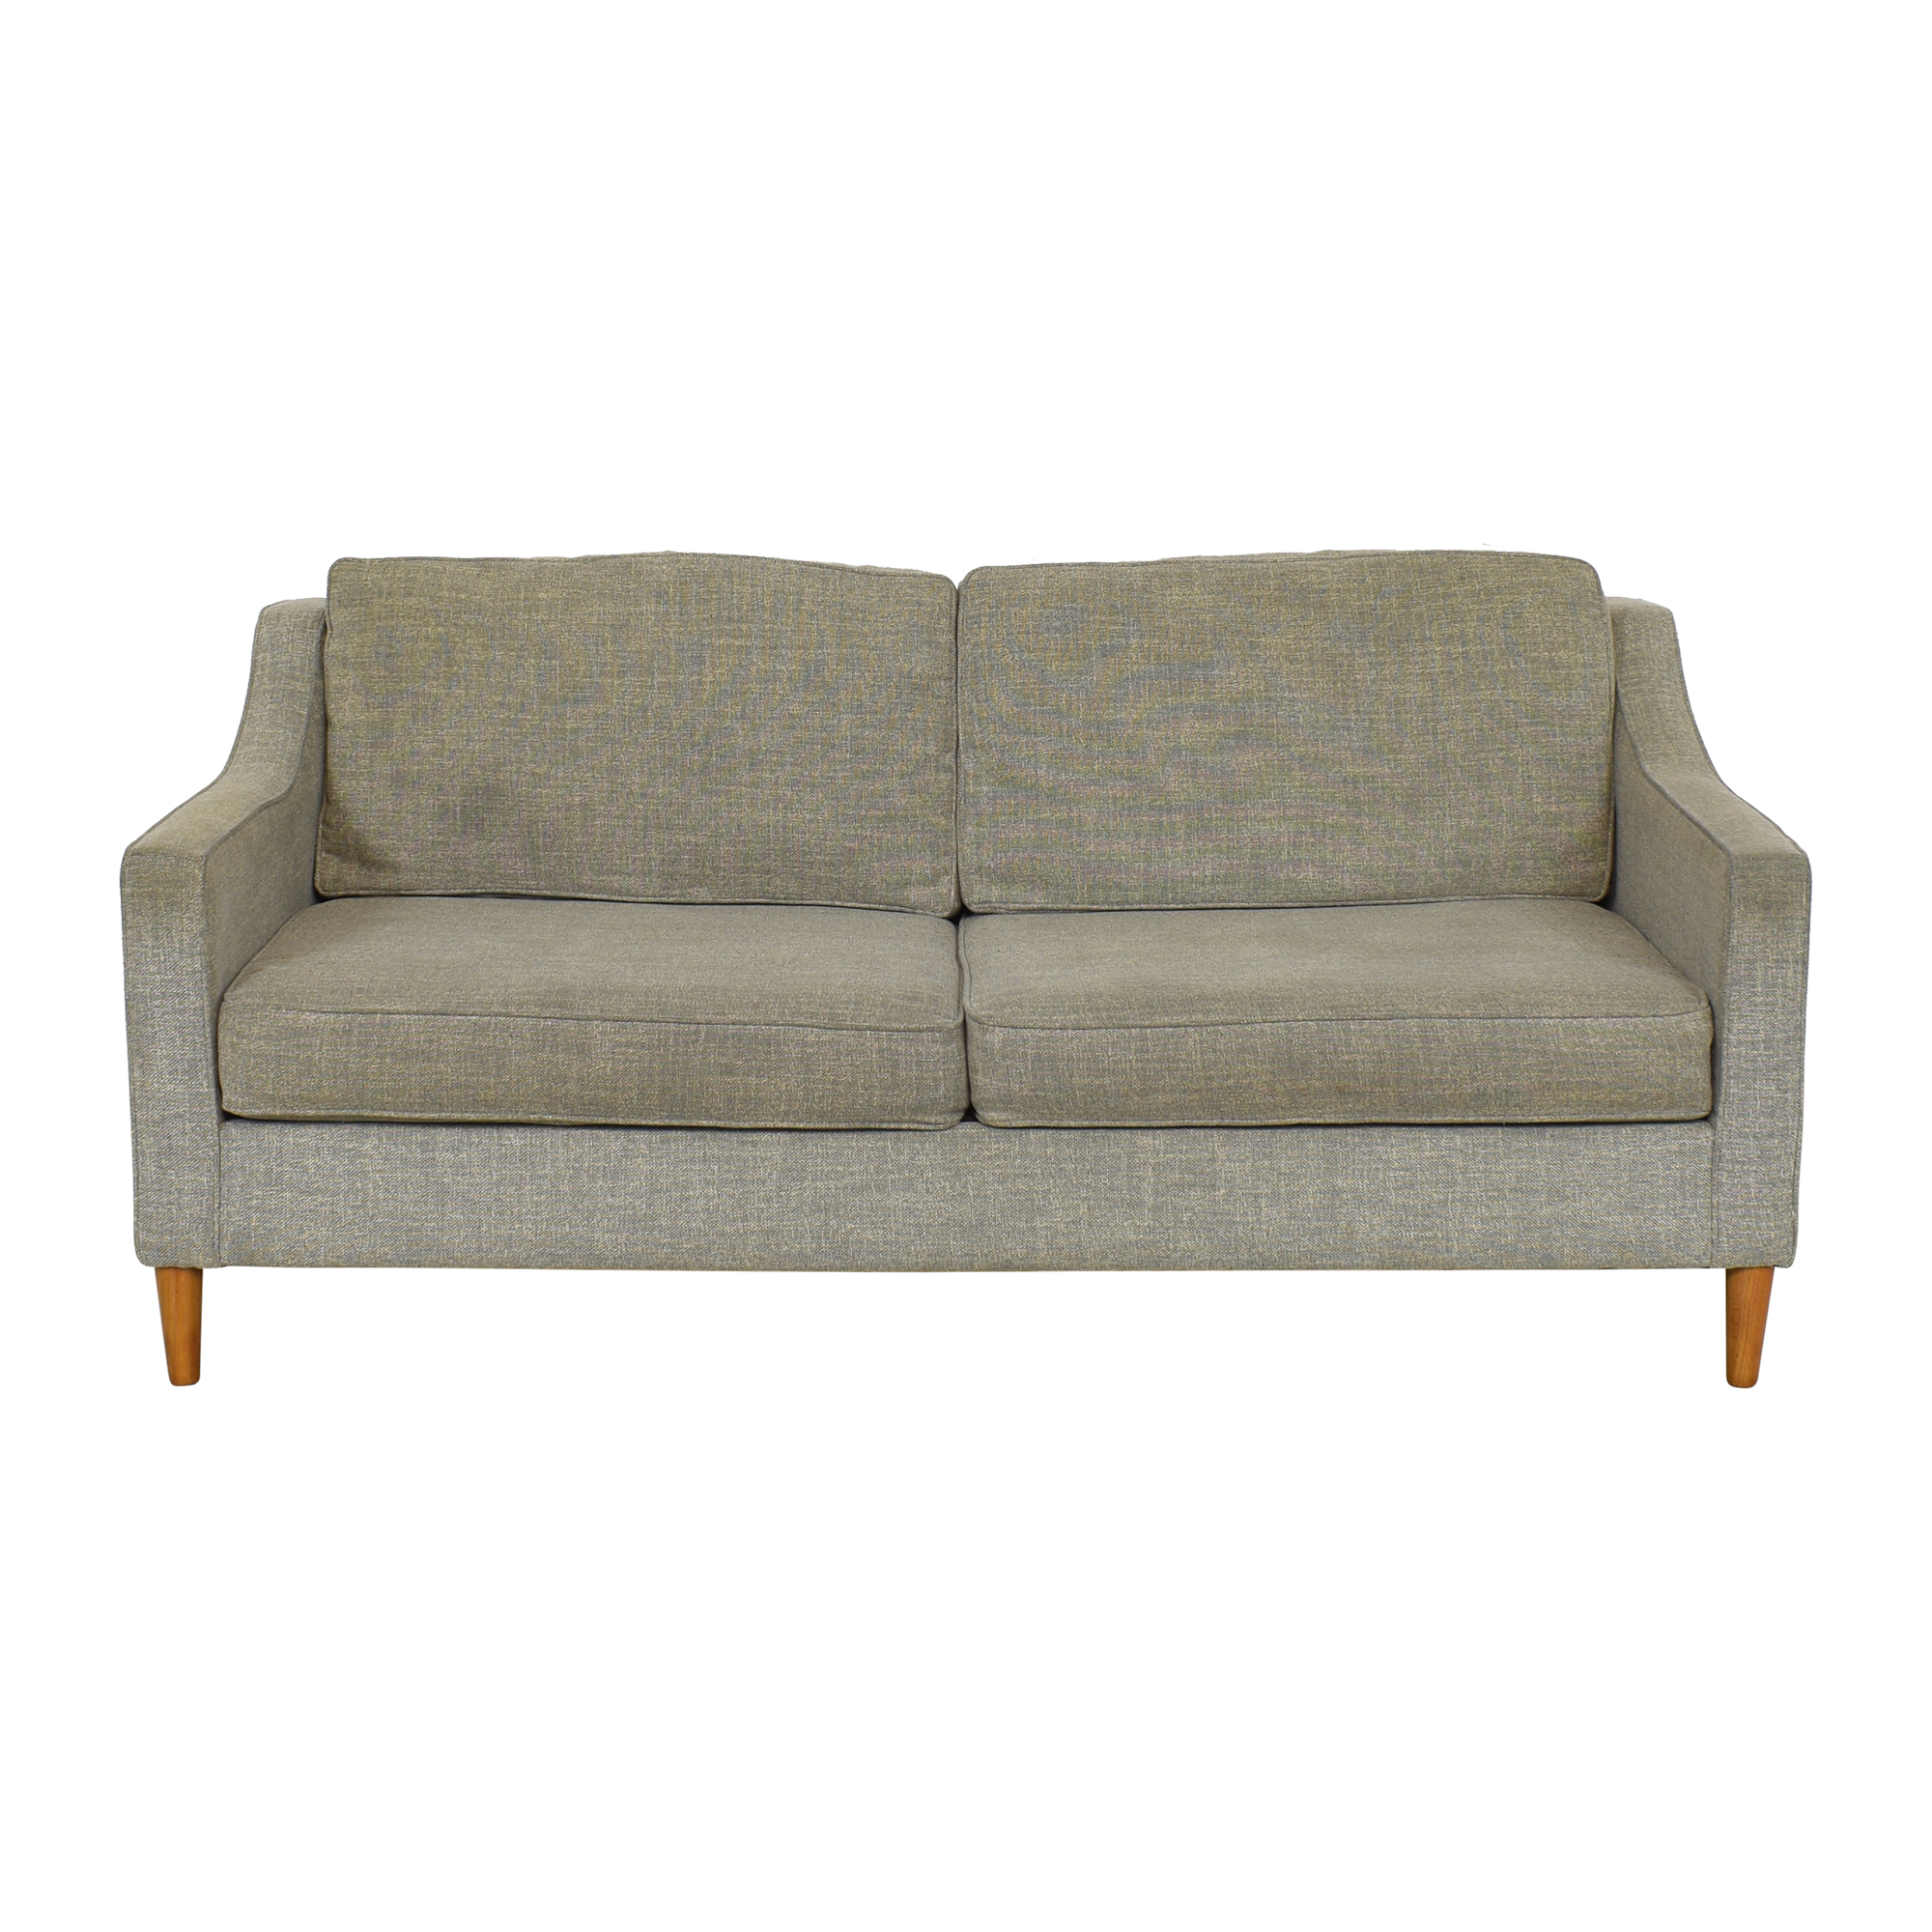 buy West Elm Two Cushion Sofa West Elm Classic Sofas